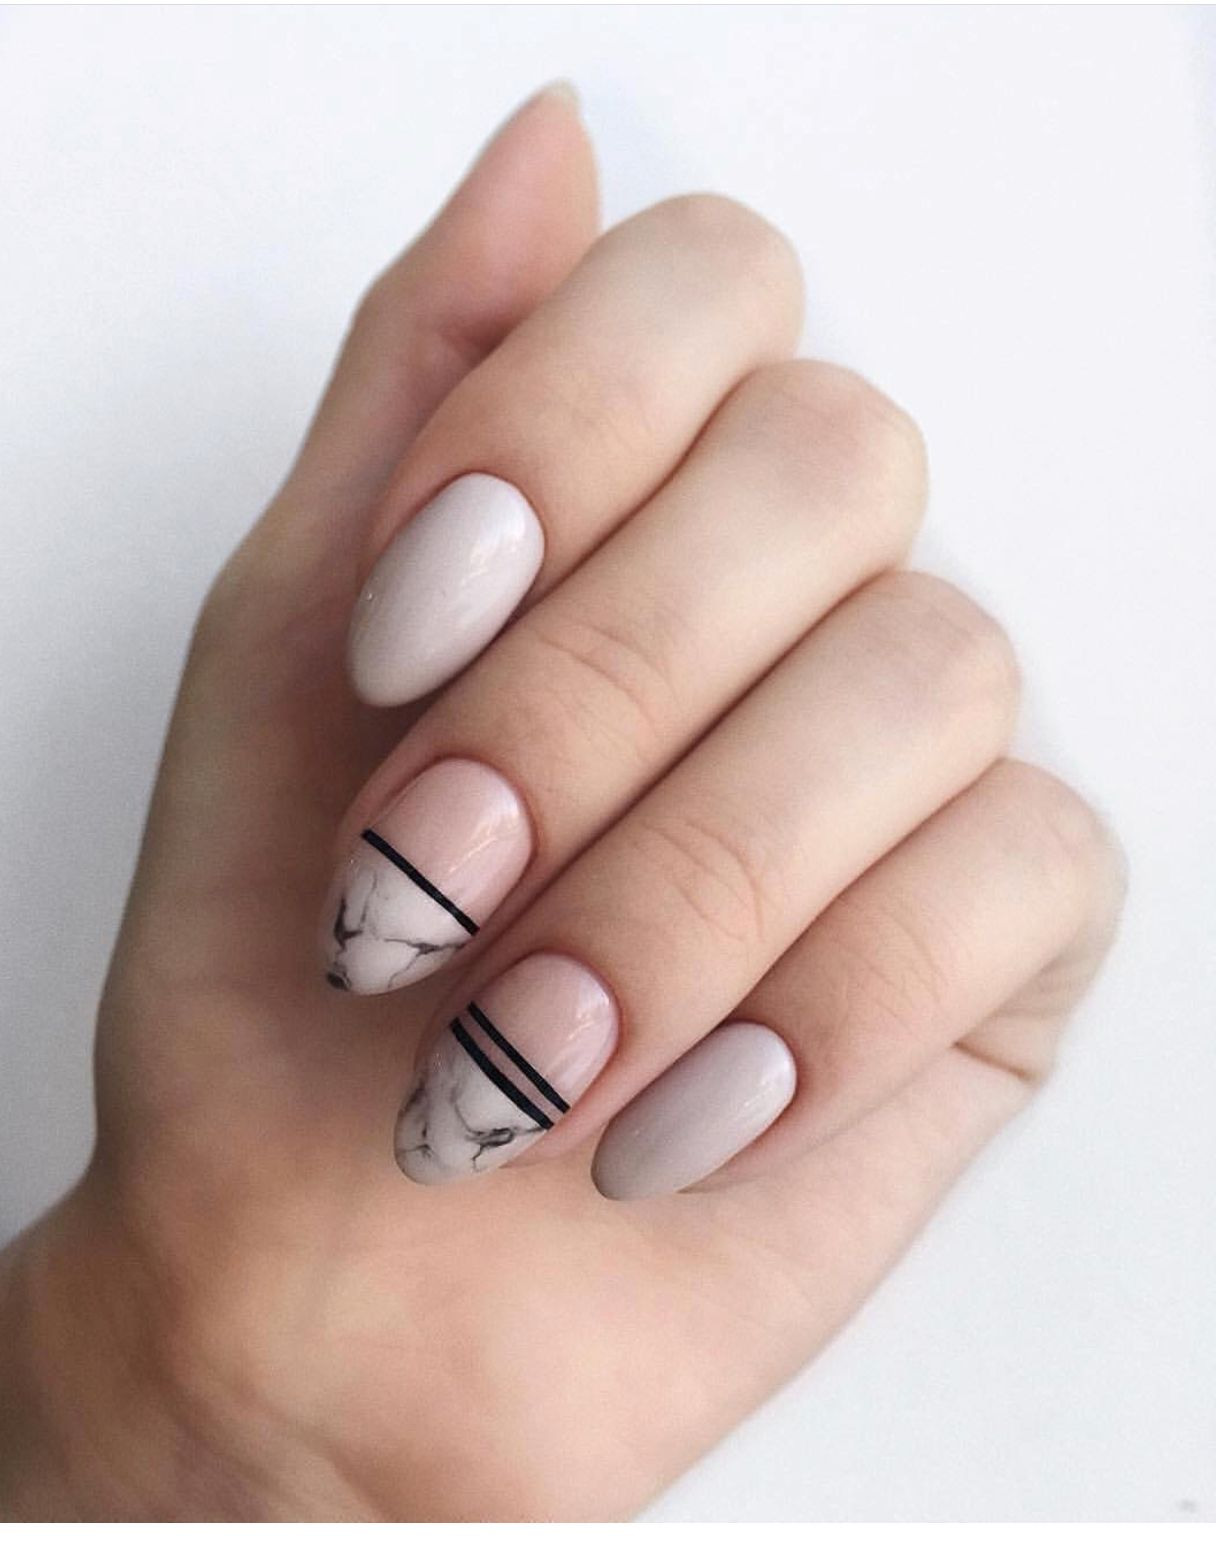 Pin by vers on Ногти in pinterest nails nail art and manicure